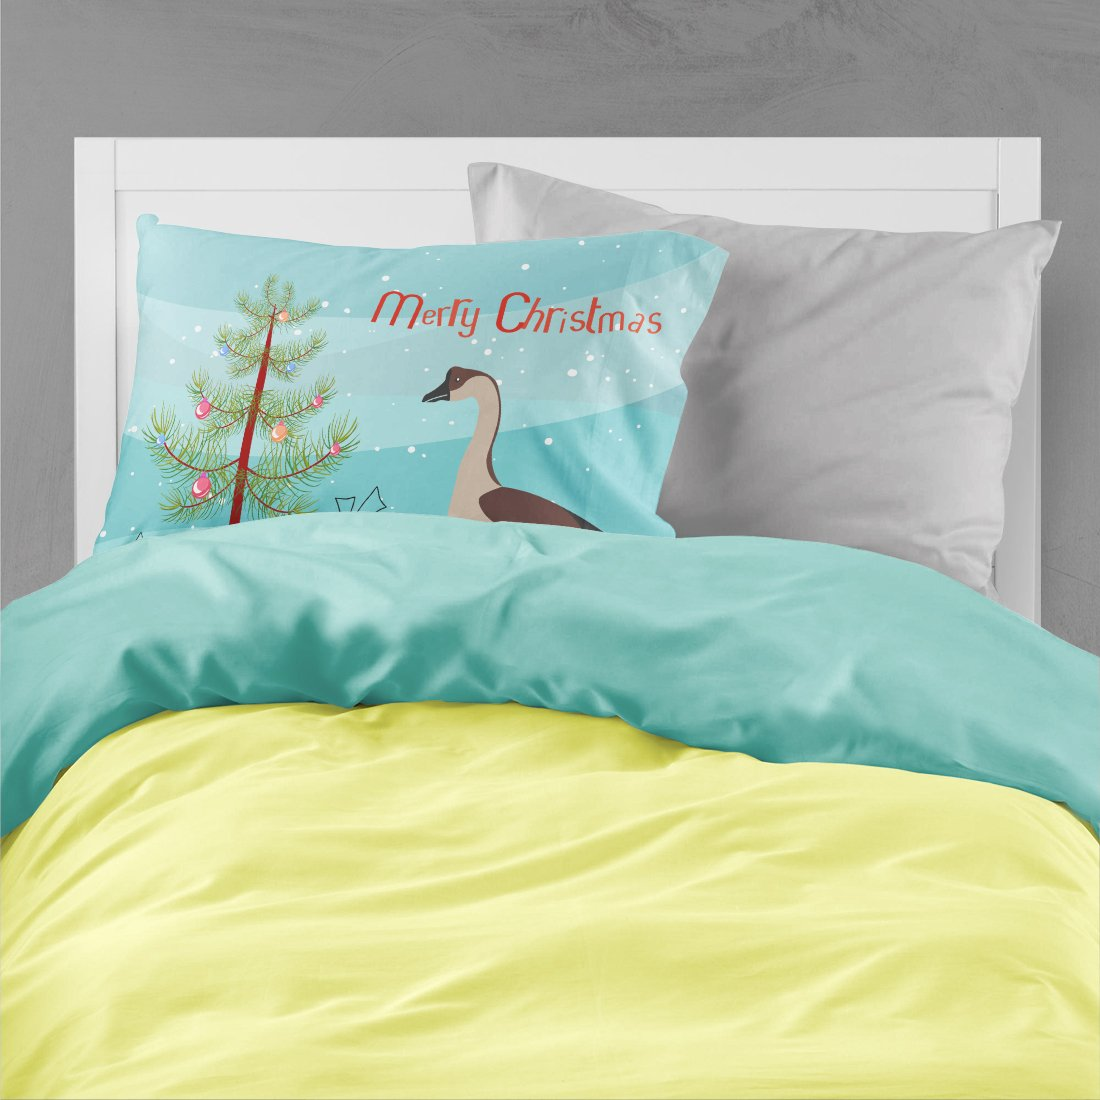 Chinese Goose Christmas Fabric Standard Pillowcase BB9263PILLOWCASE by Caroline's Treasures